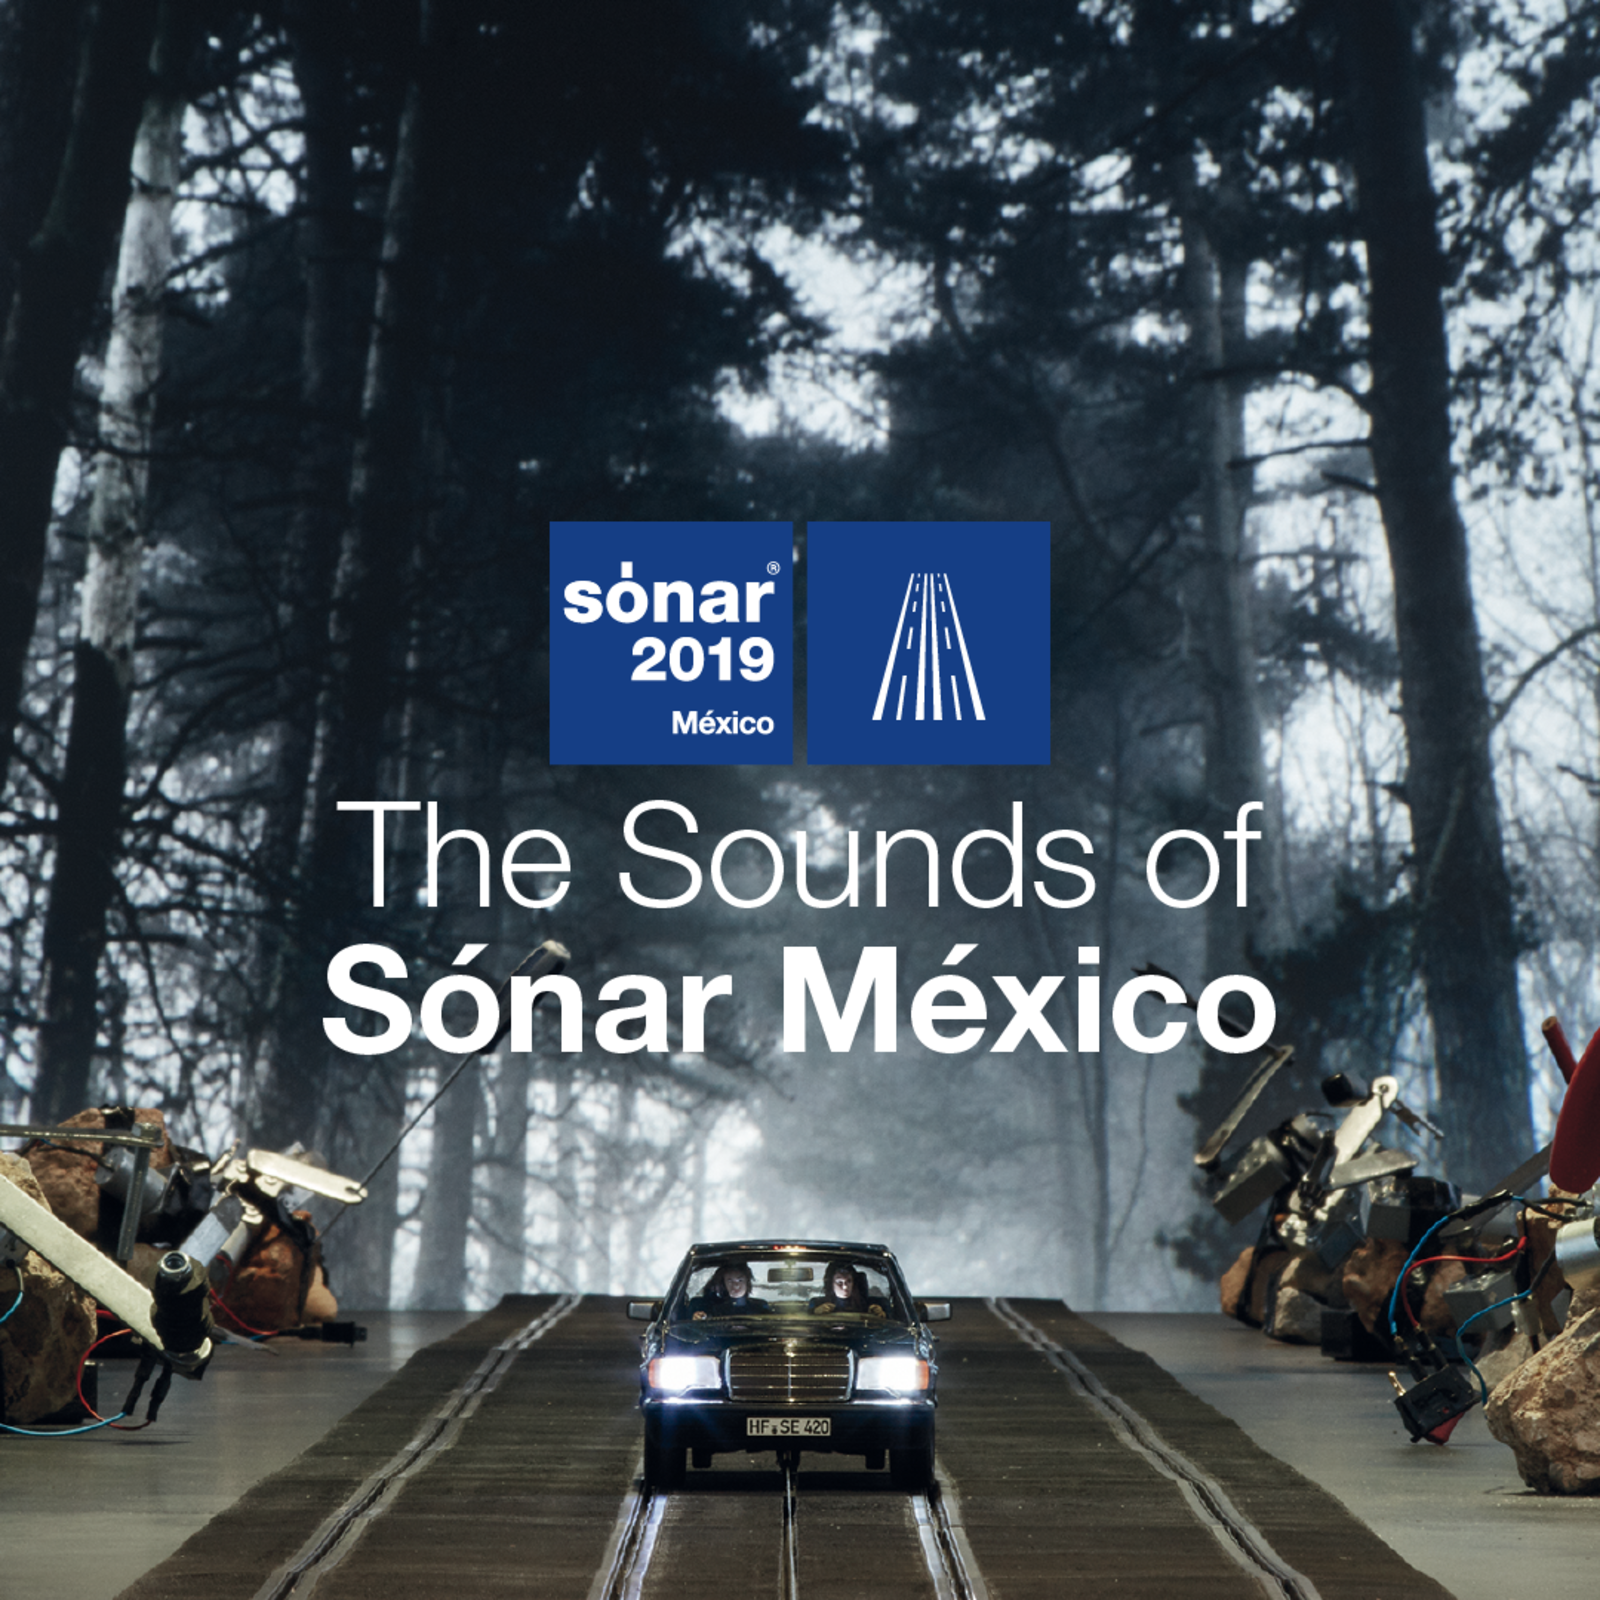 The Sounds of Sónar México 2019